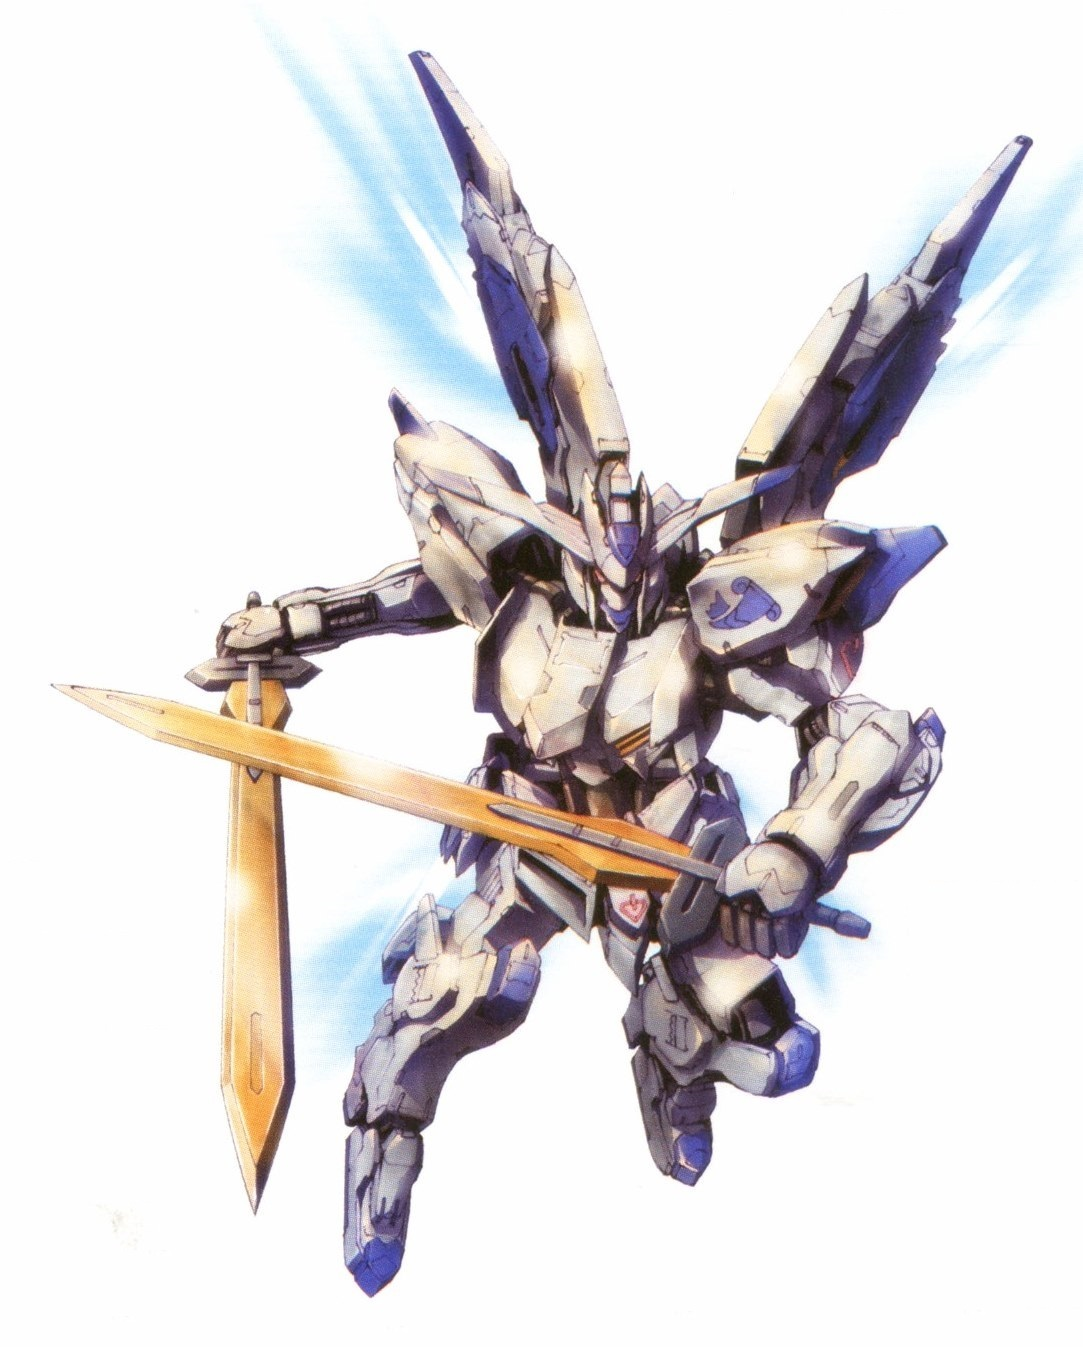 Some Iron Blooded Orphans Wallpaper Images Gundam Kits